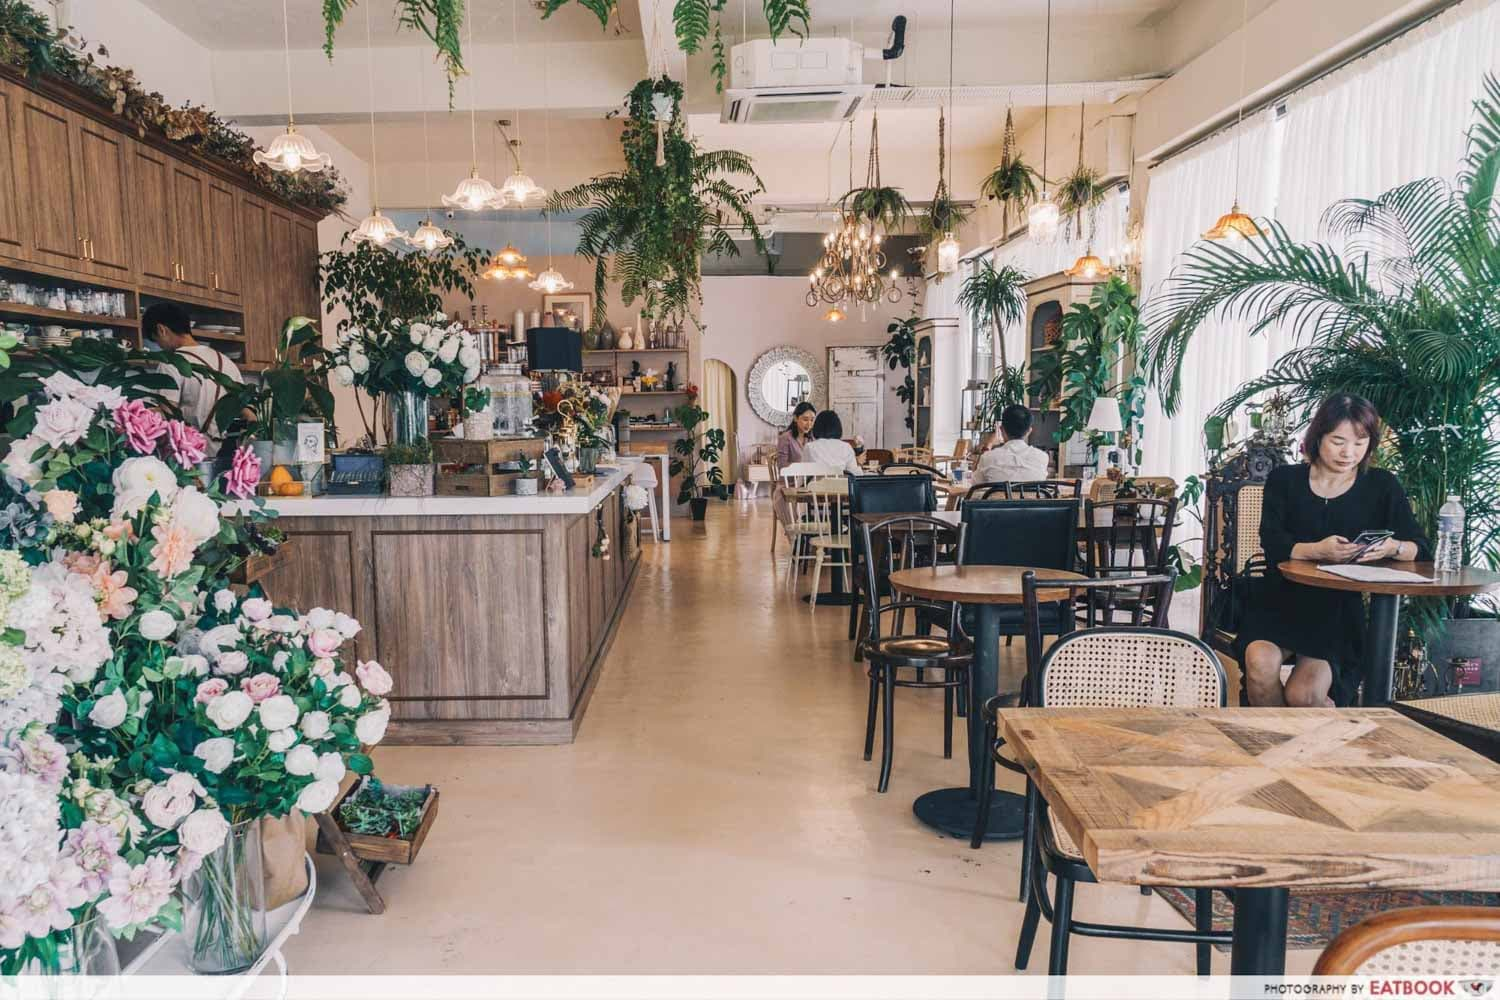 12 New Restaurants June - Cafe de Nicole's flower ambience